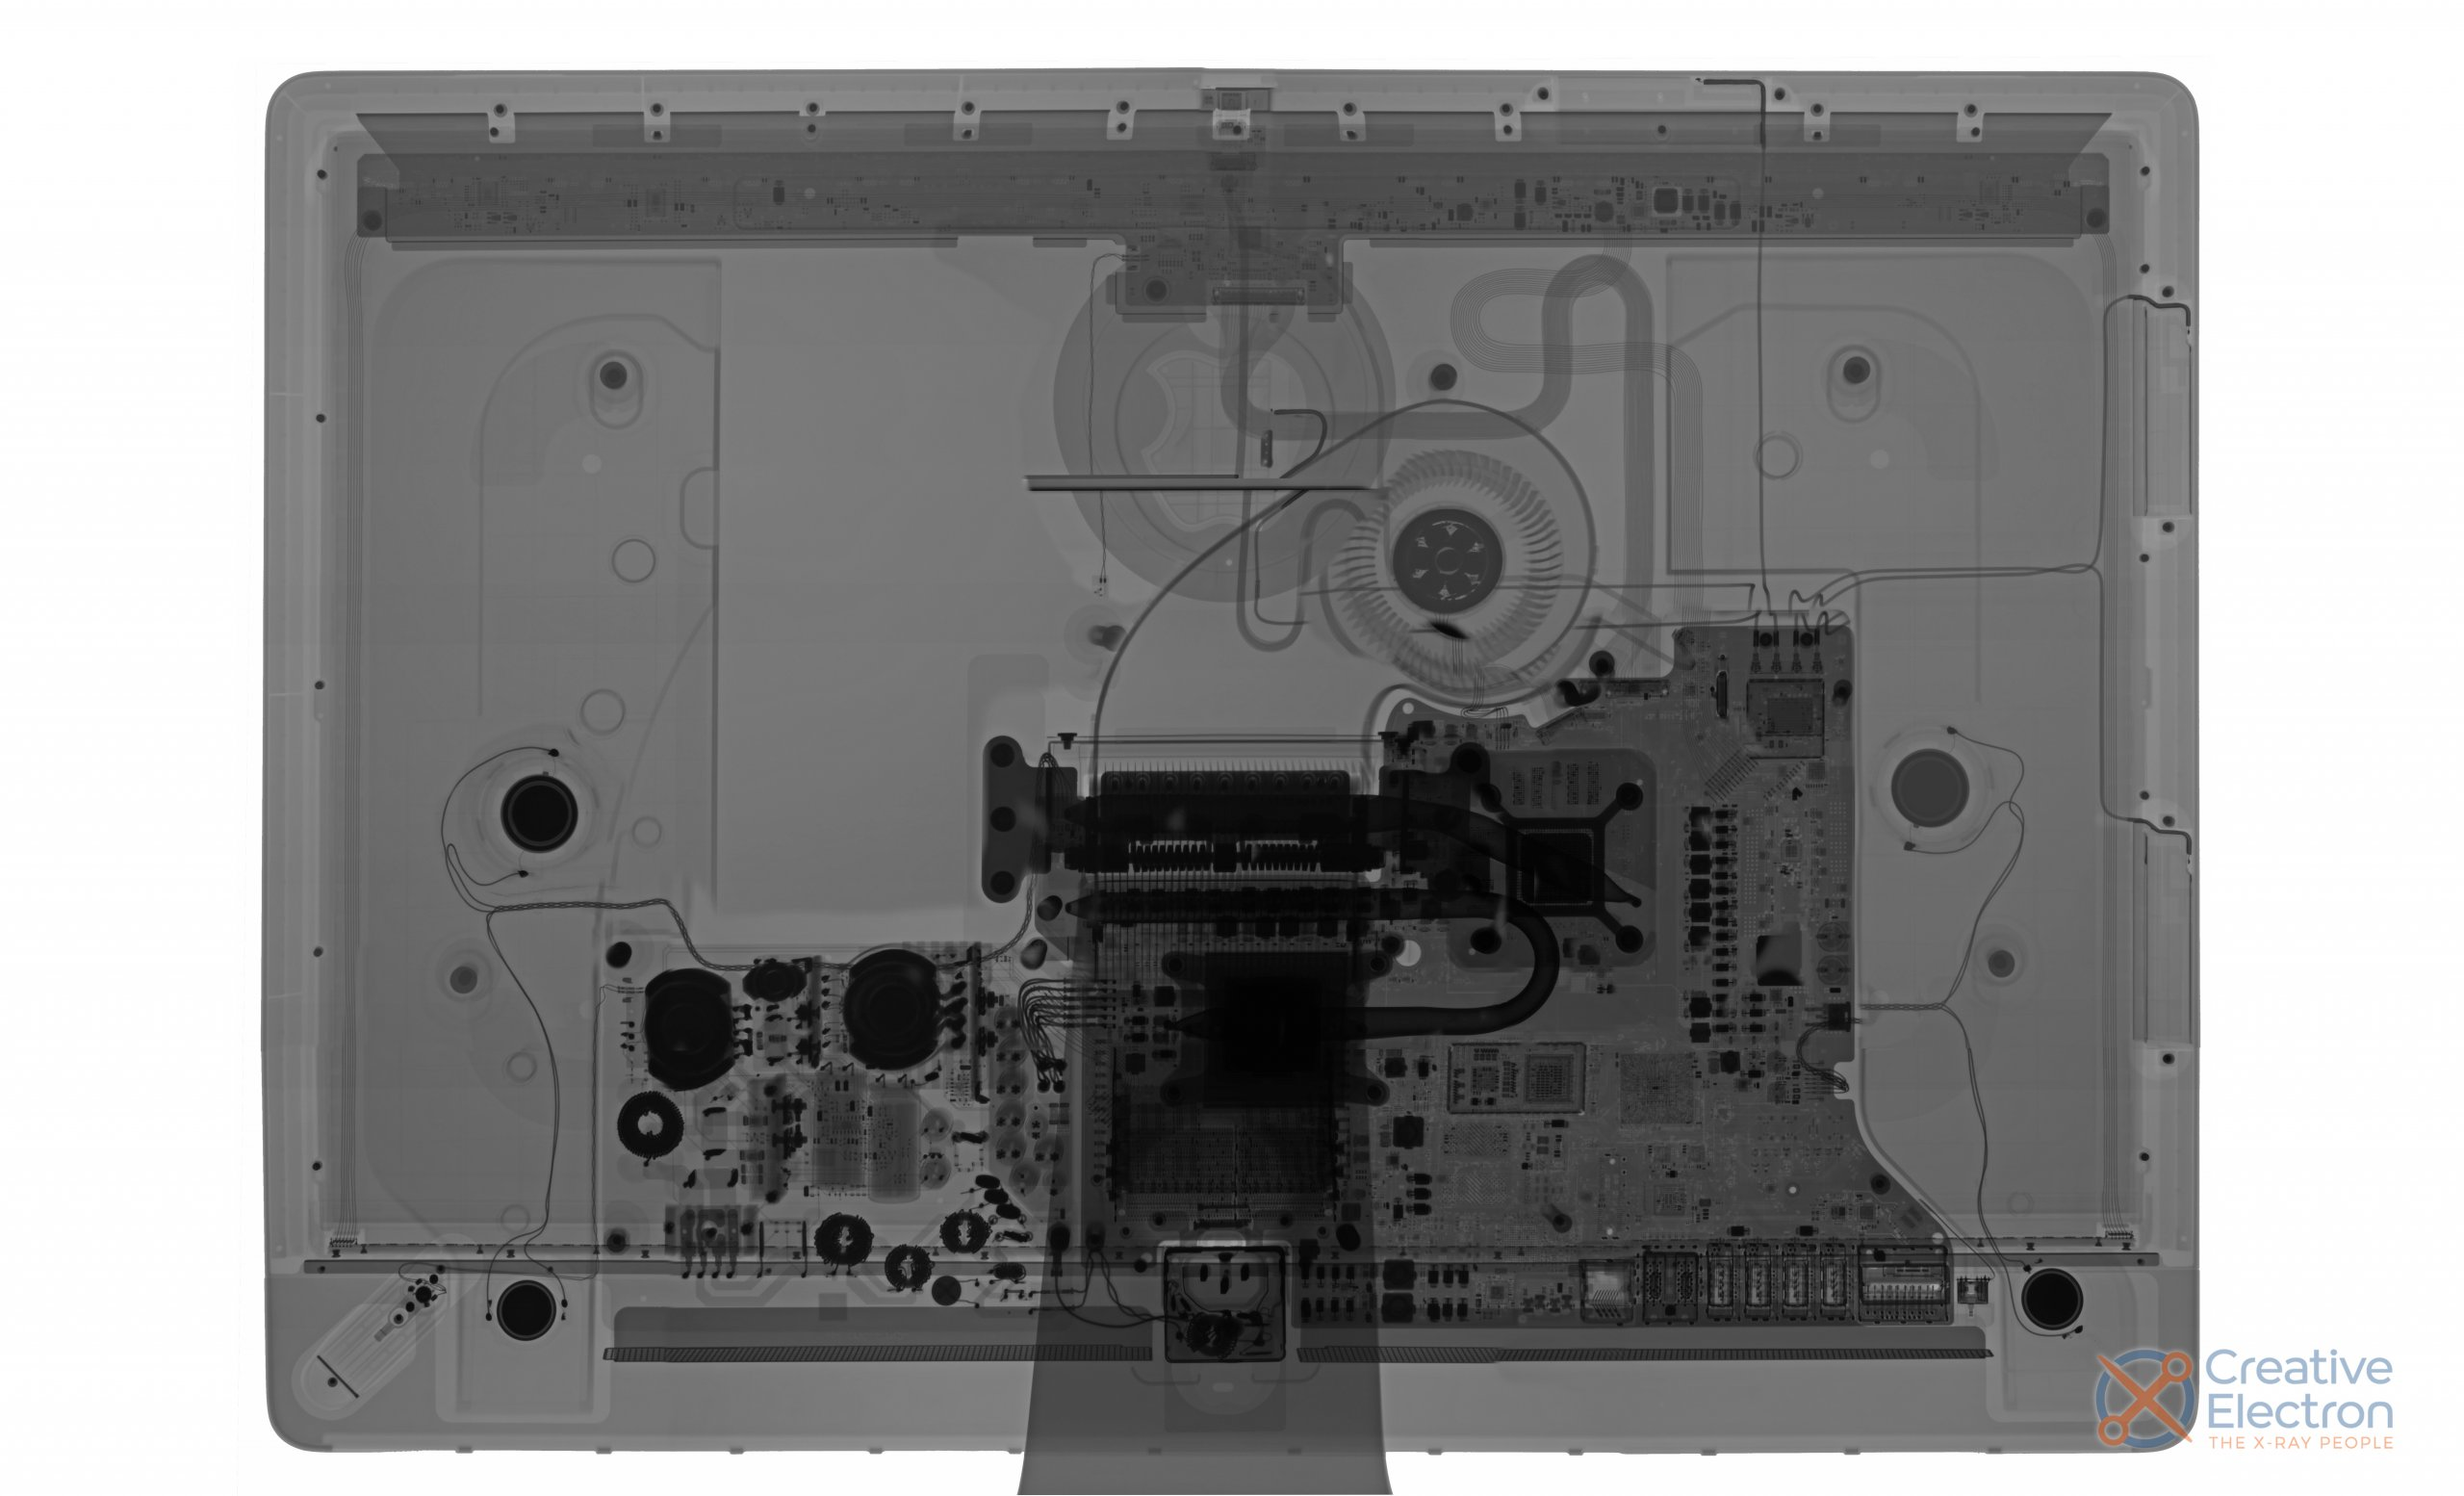 X-ray image of the 2020 iMac 27""